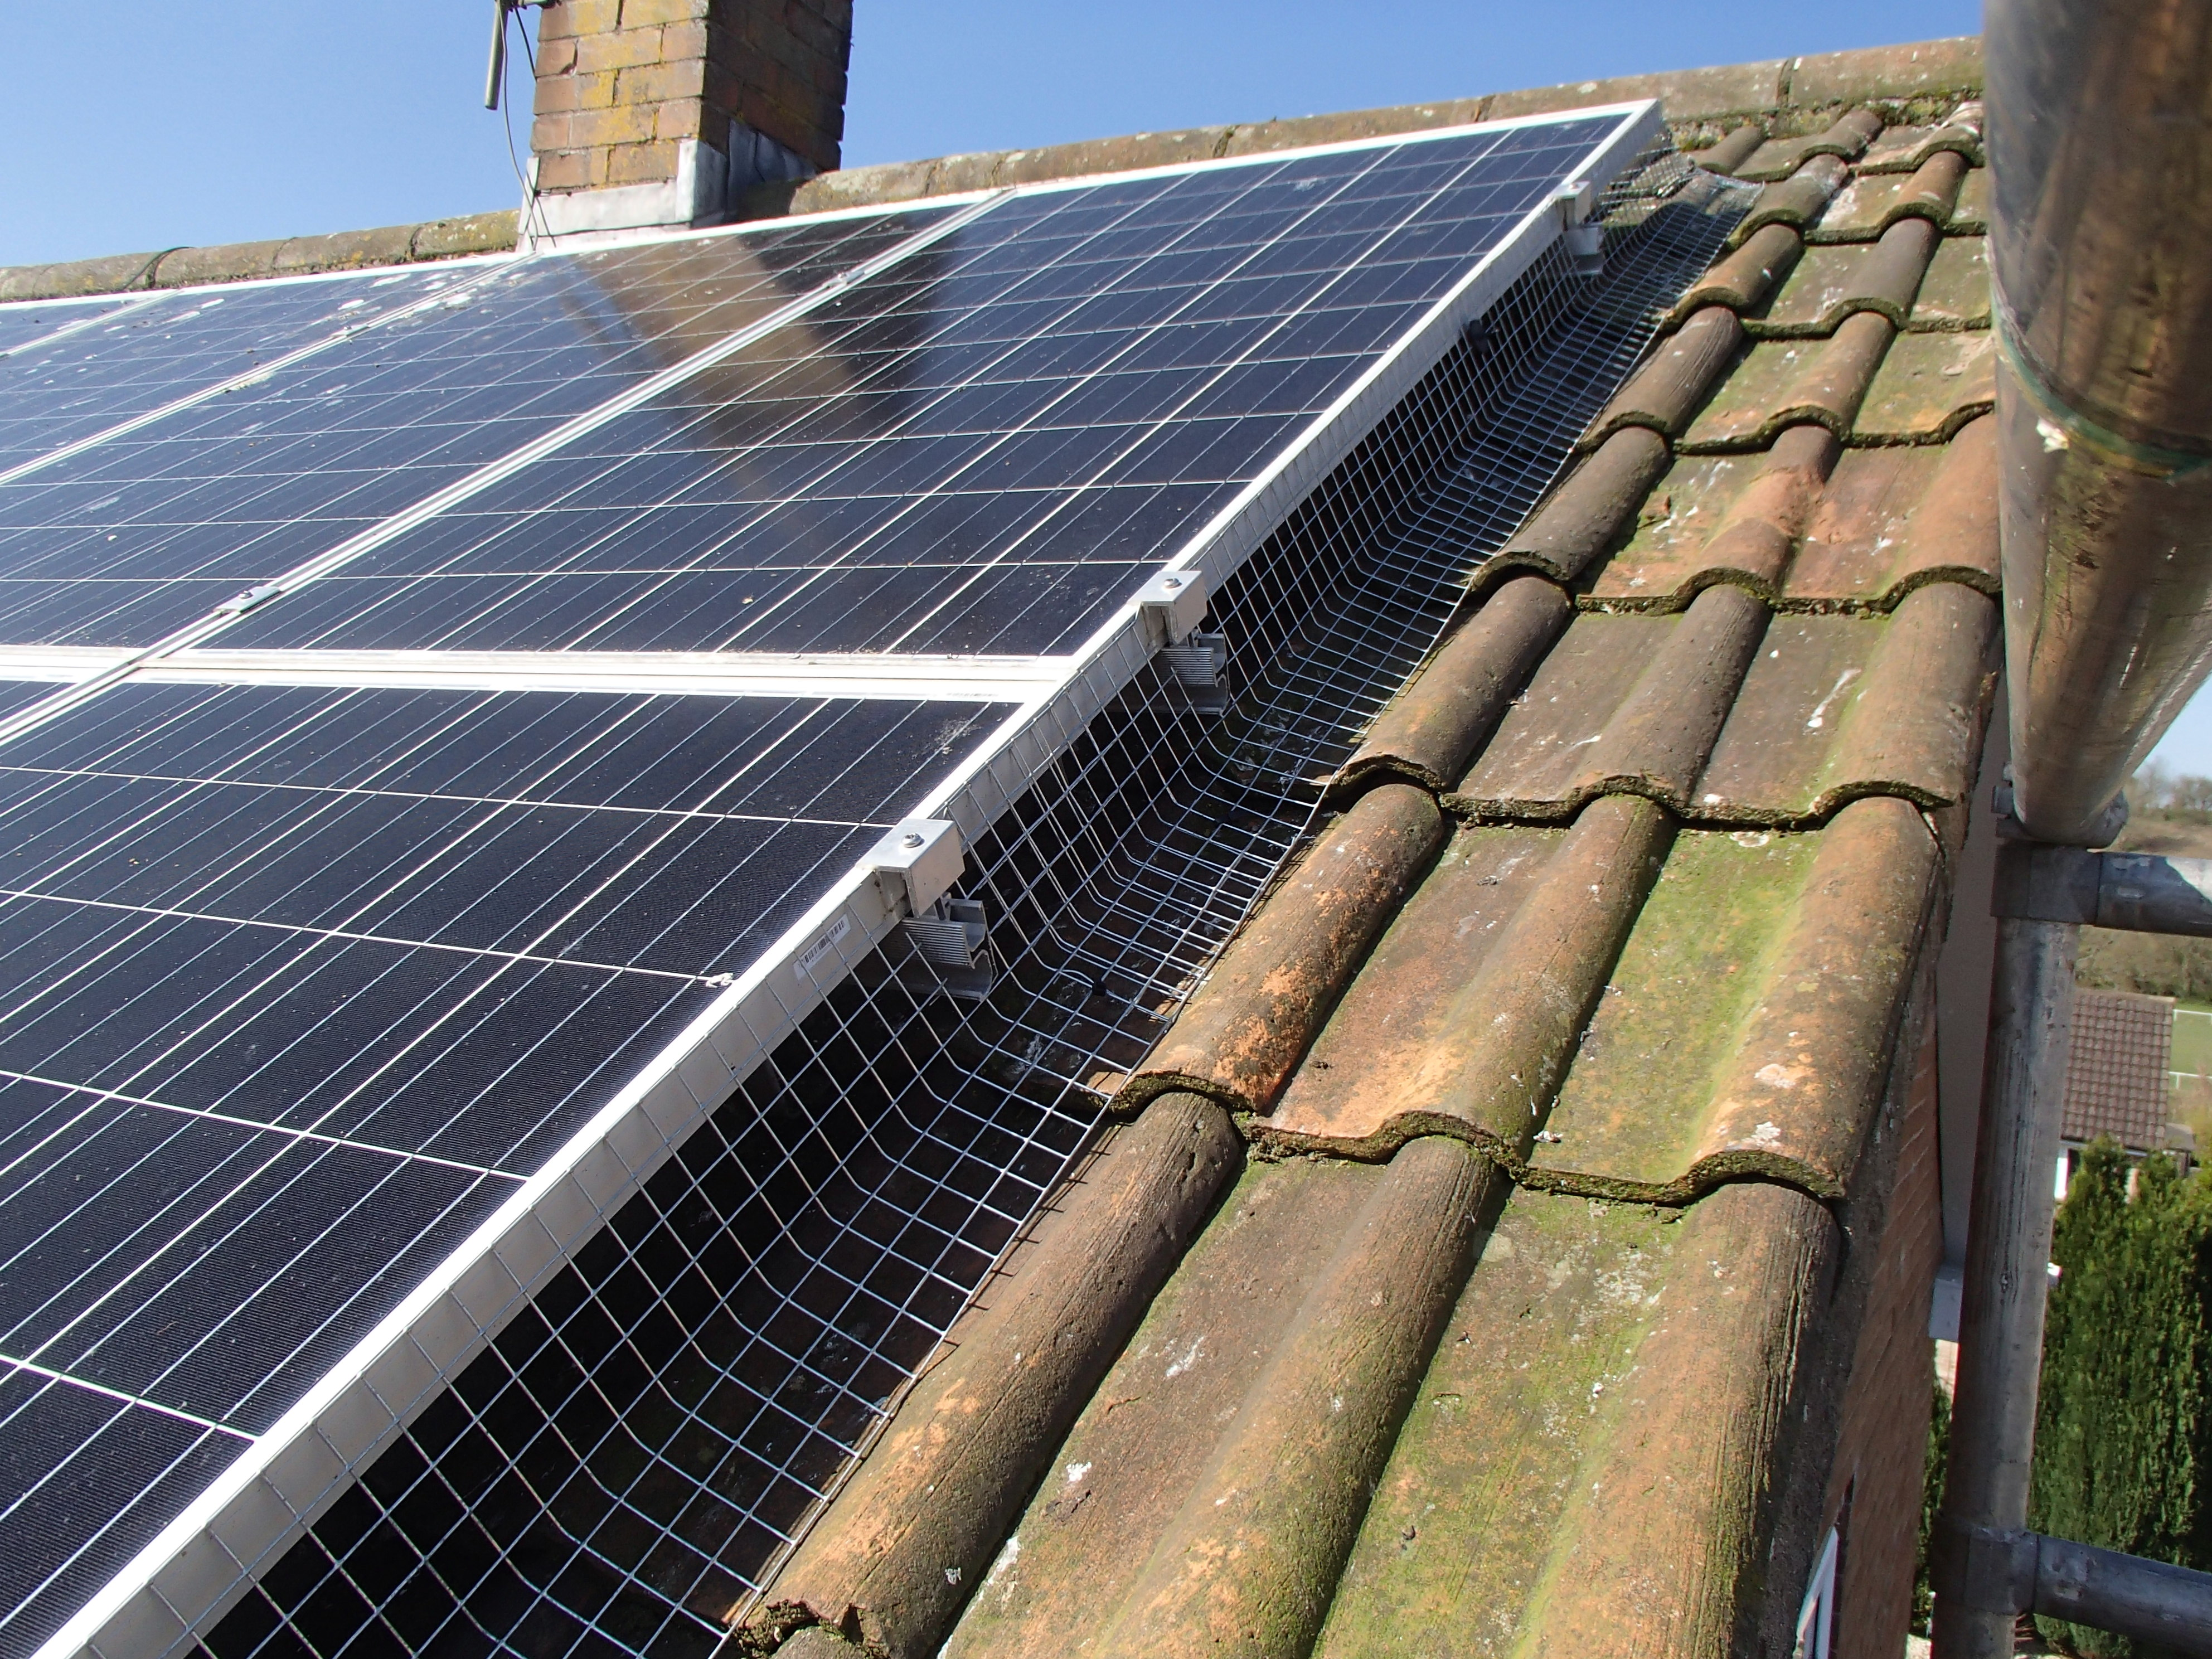 proofing solar panels from pigeons_2